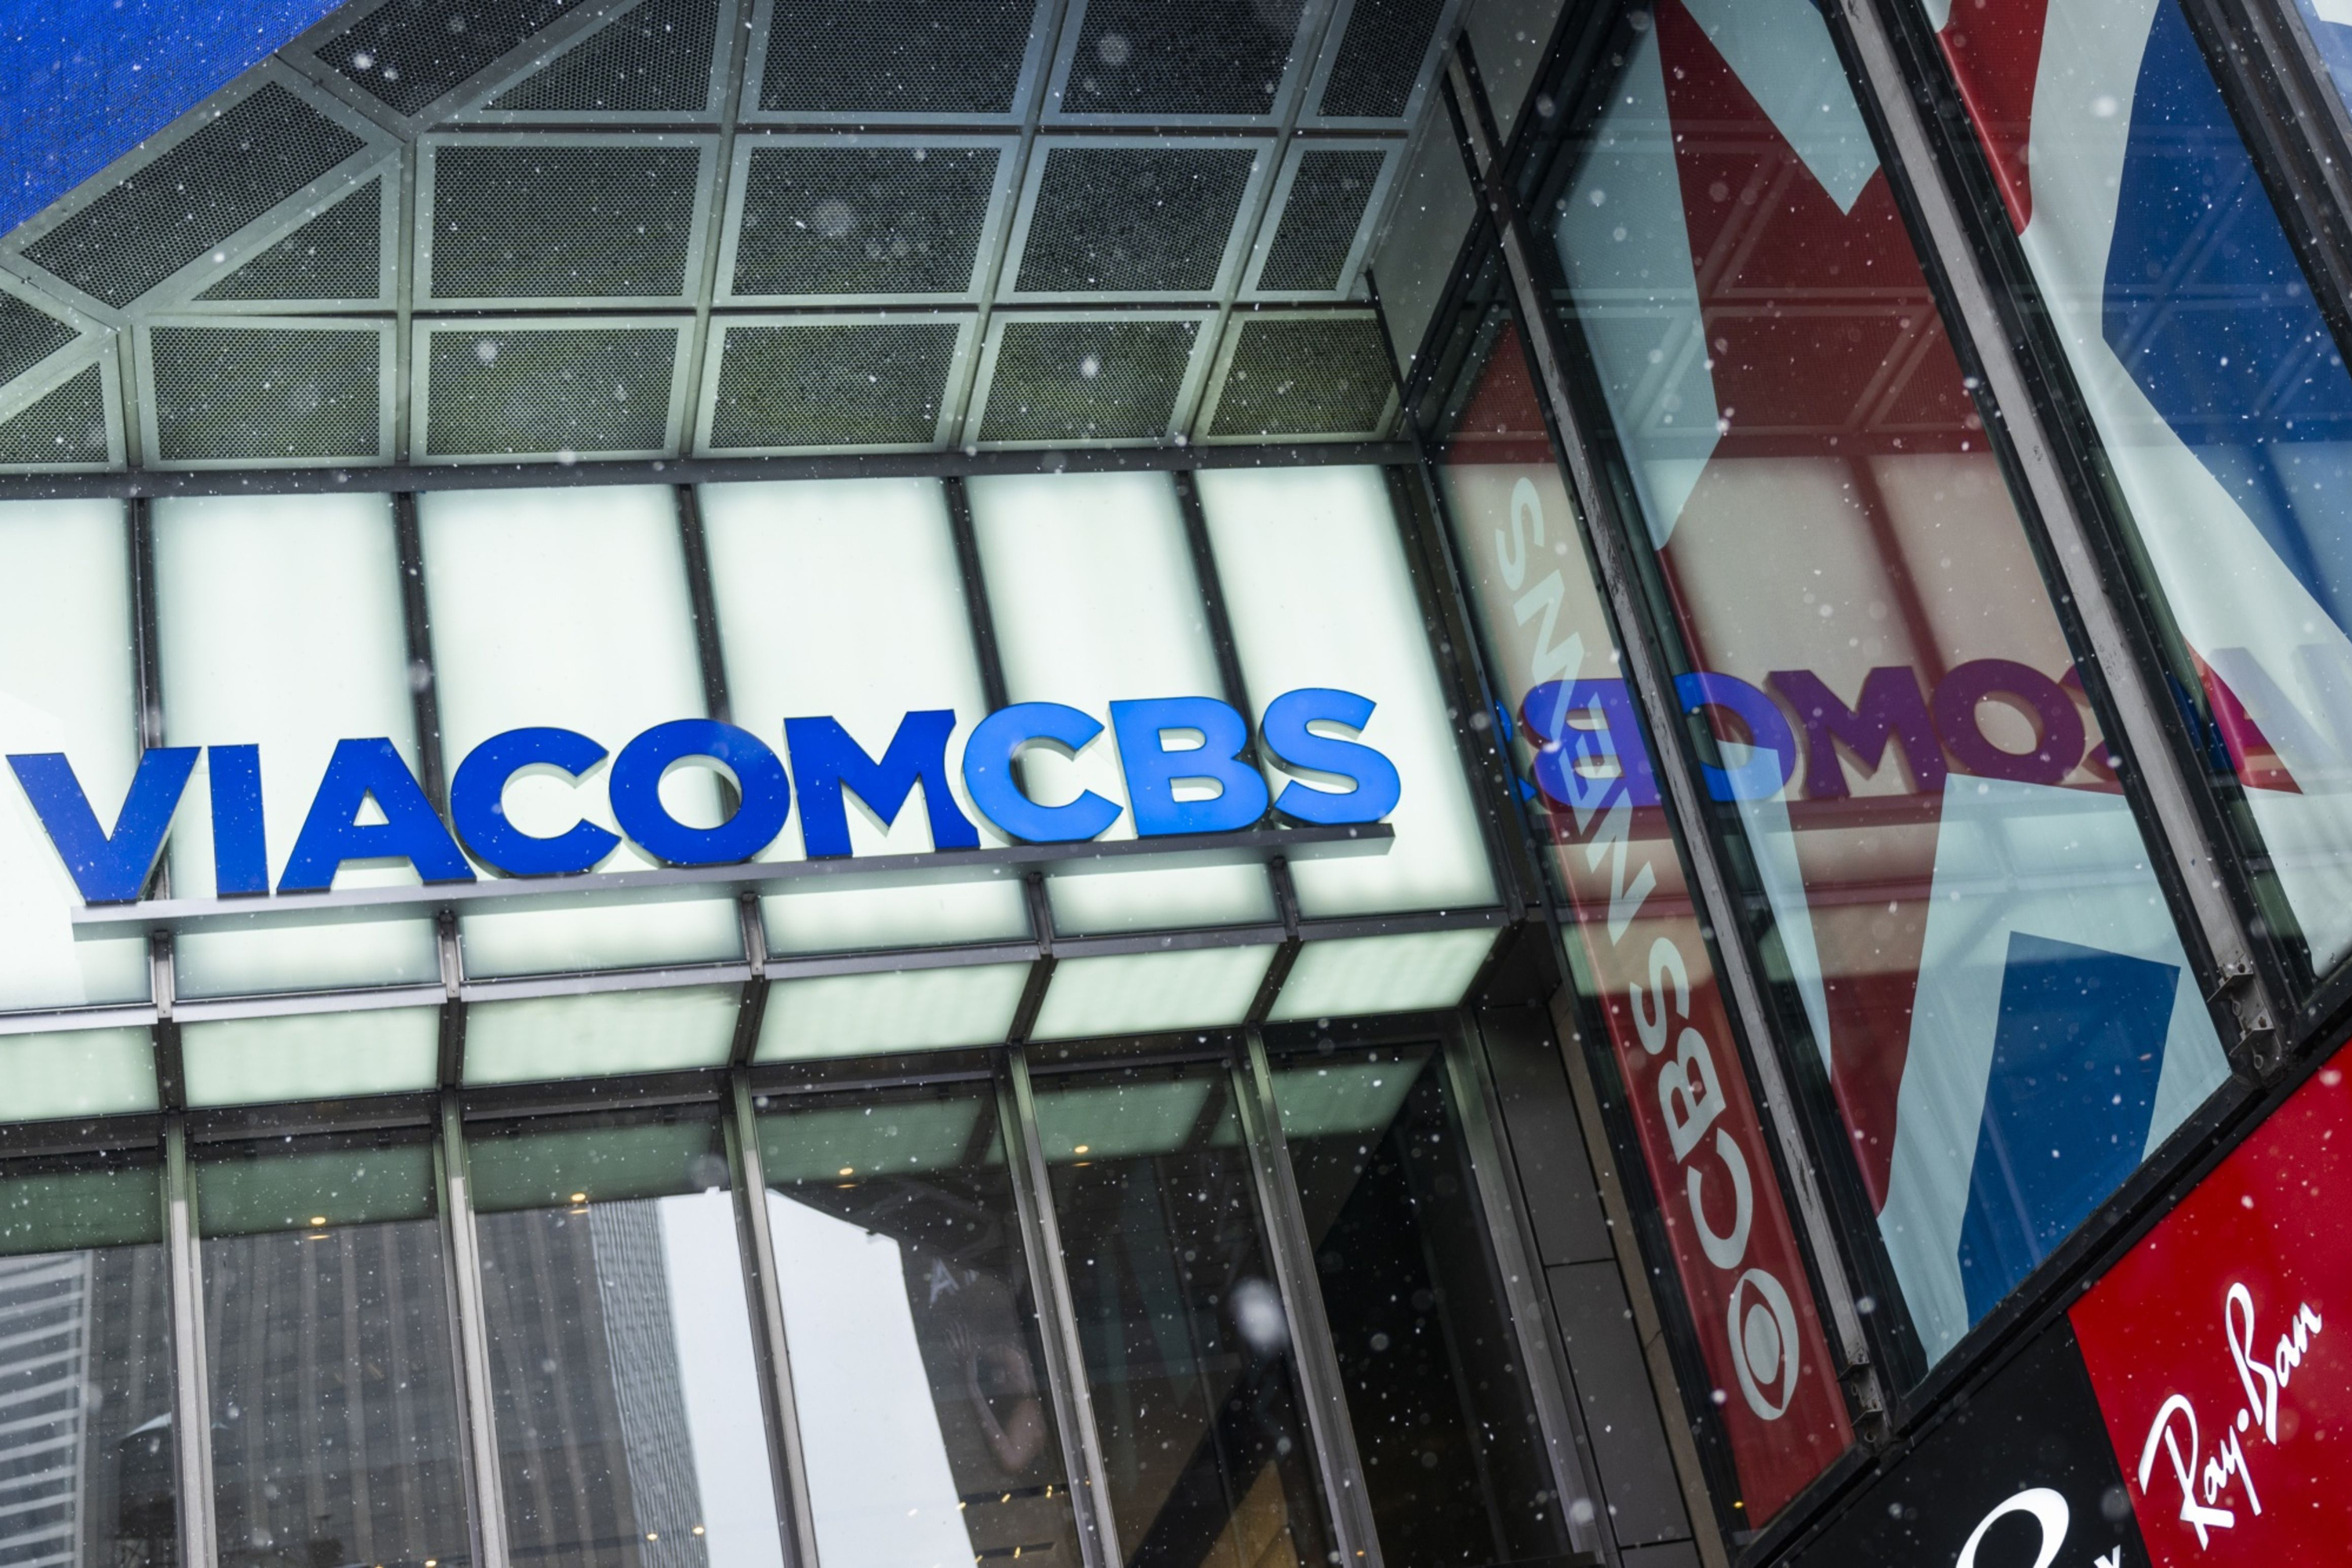 ViacomCBS says streaming customers grew to almost 30 million